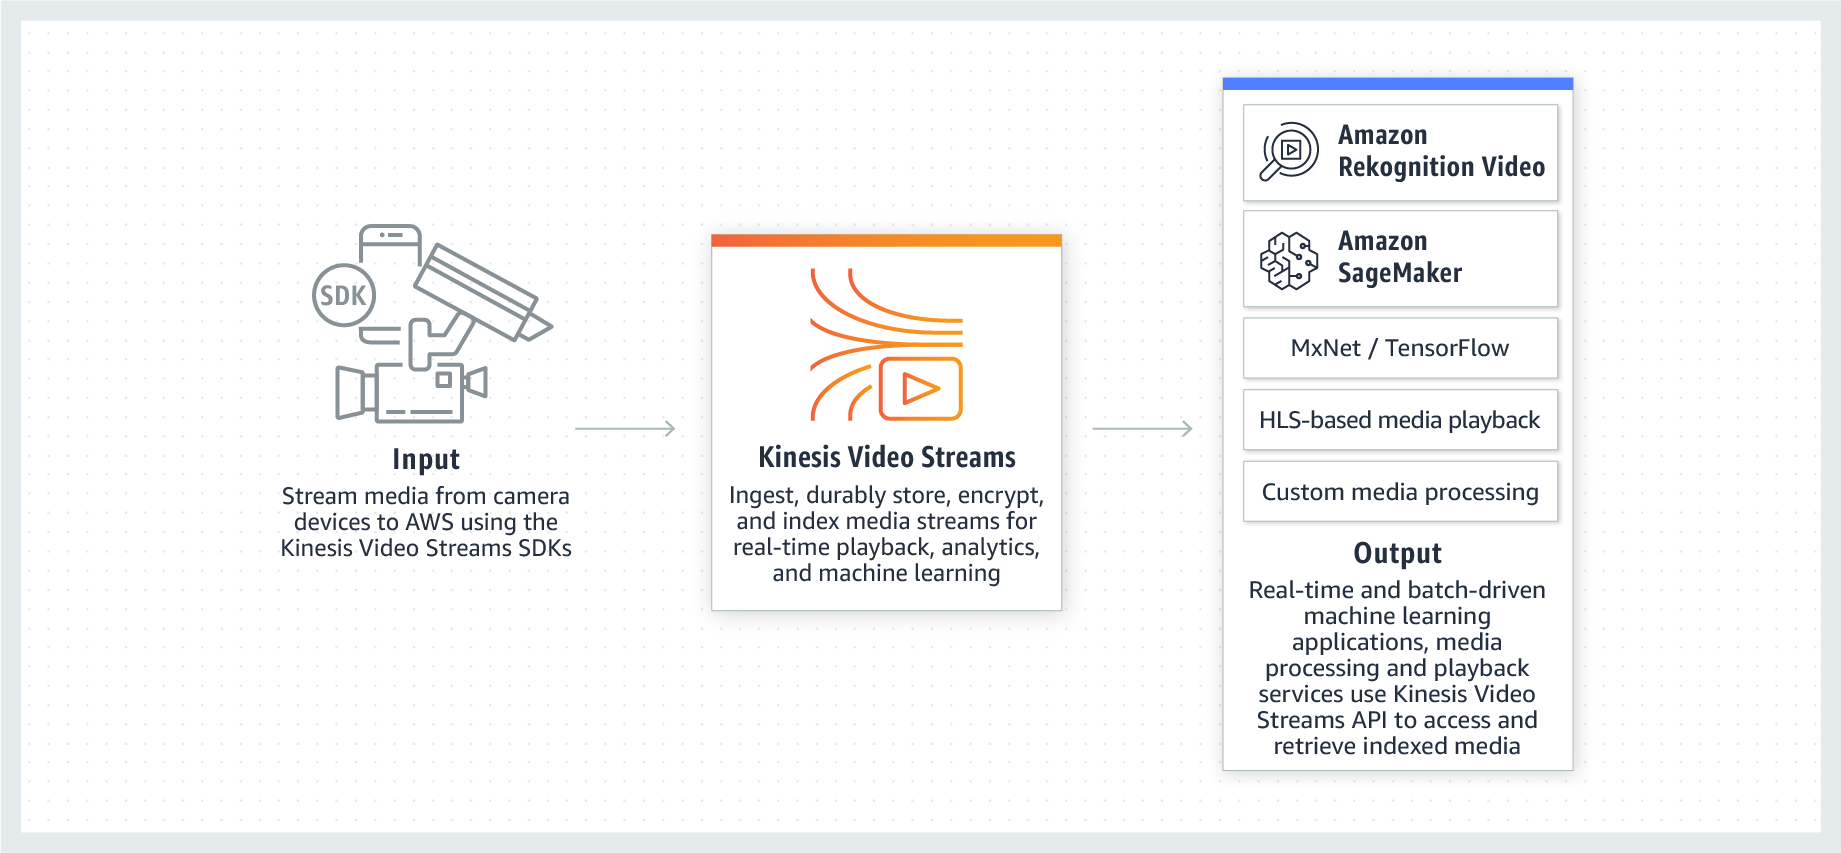 Cara kerja Amazon Kinesis Video Streams